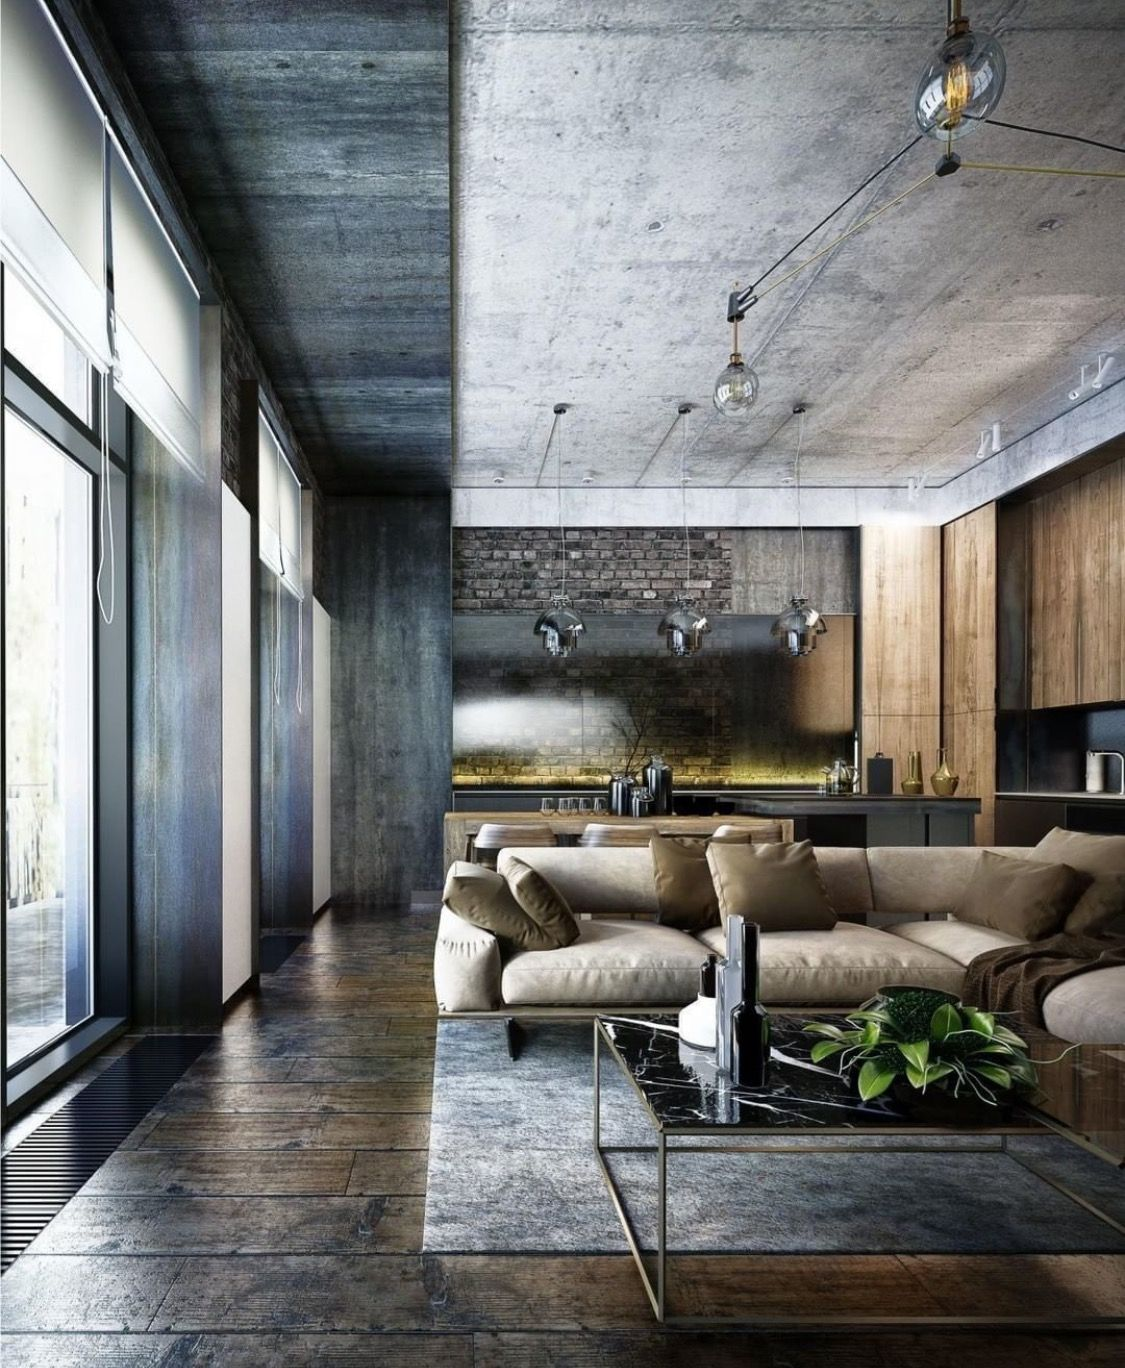 Industrial design interiors industrial style loft interior design interior design magazine room